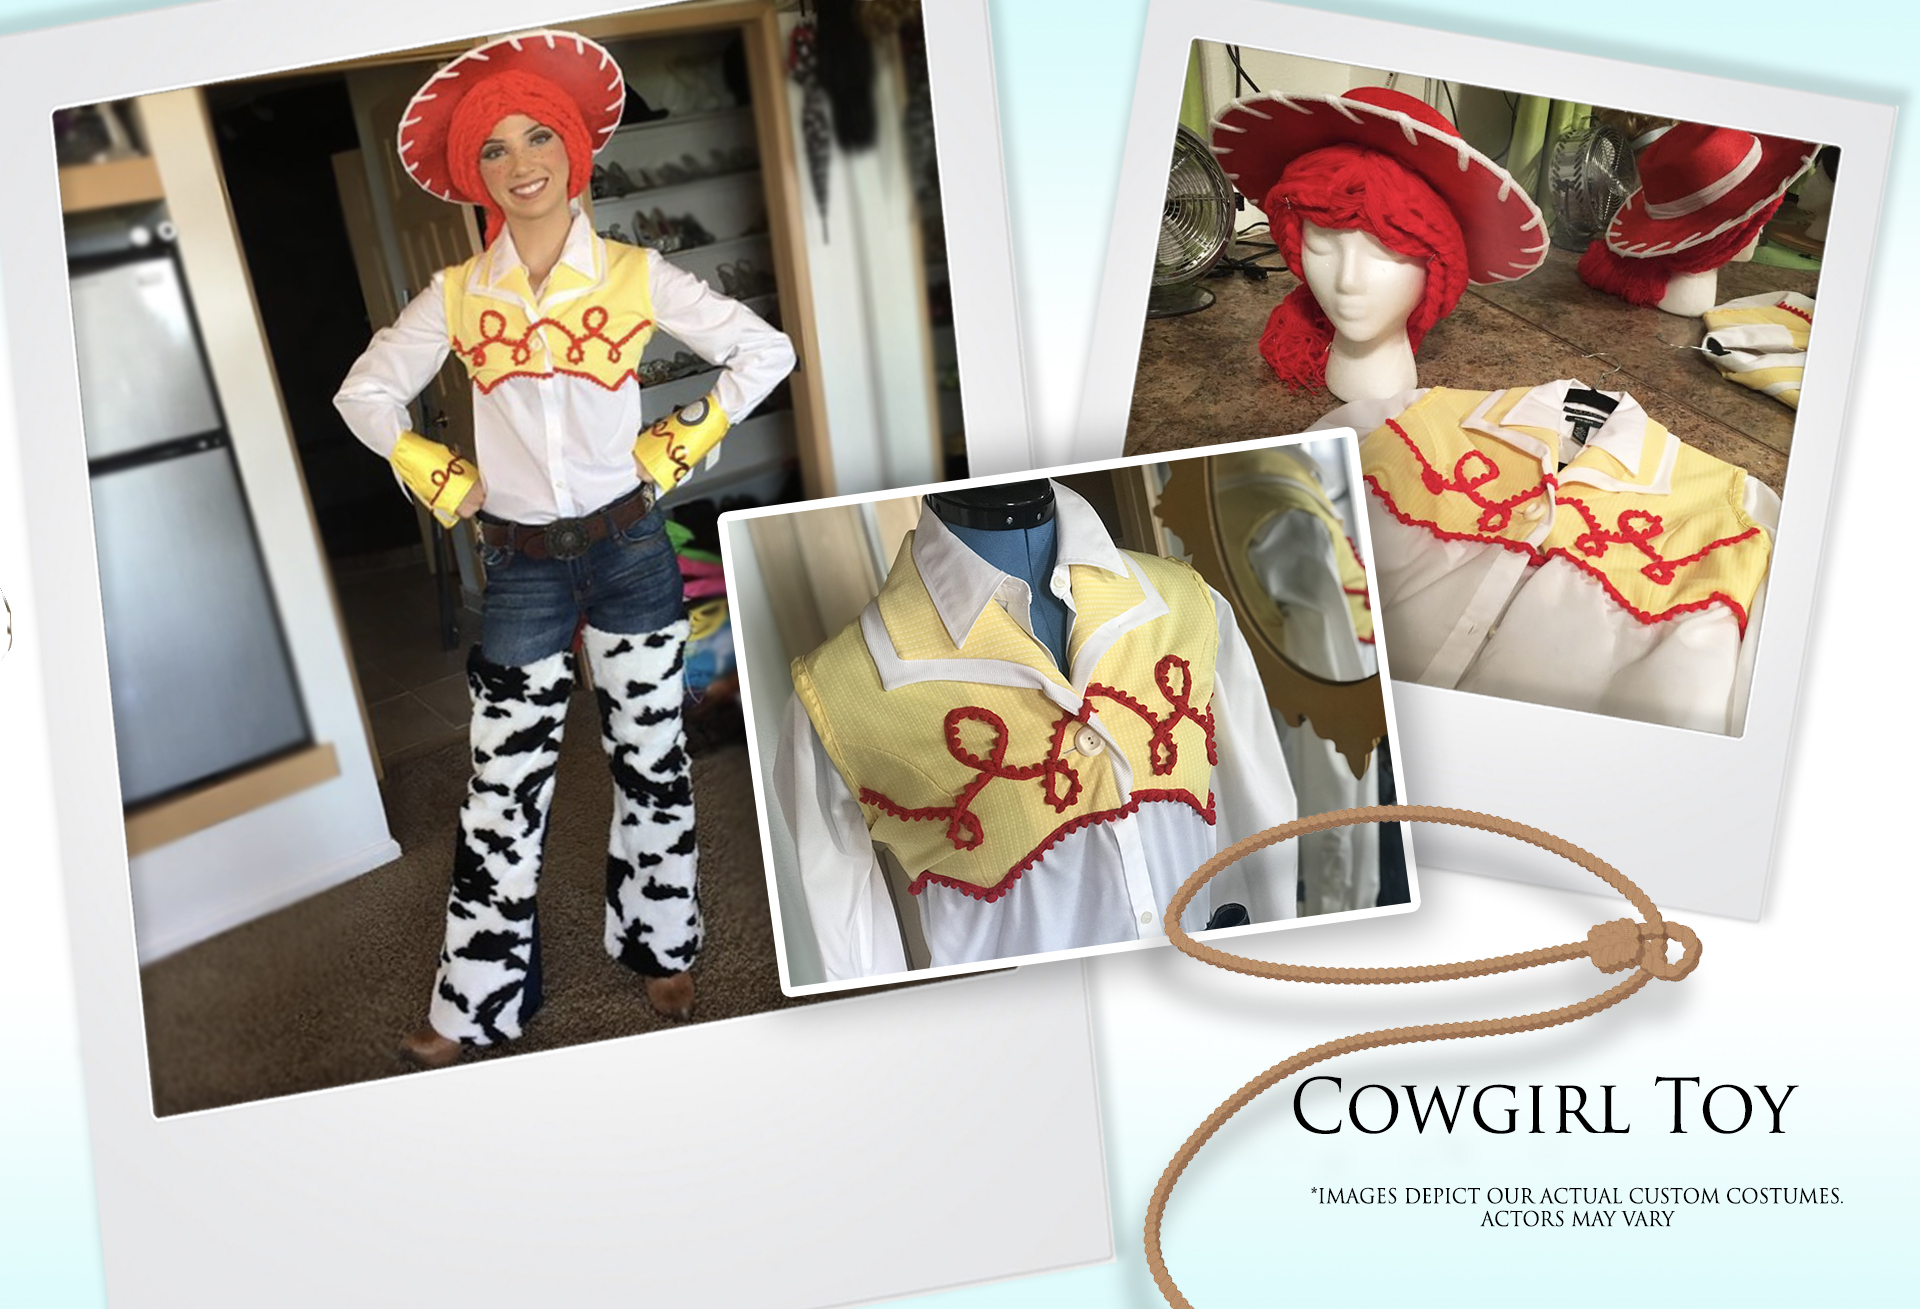 Cowgirl Toy